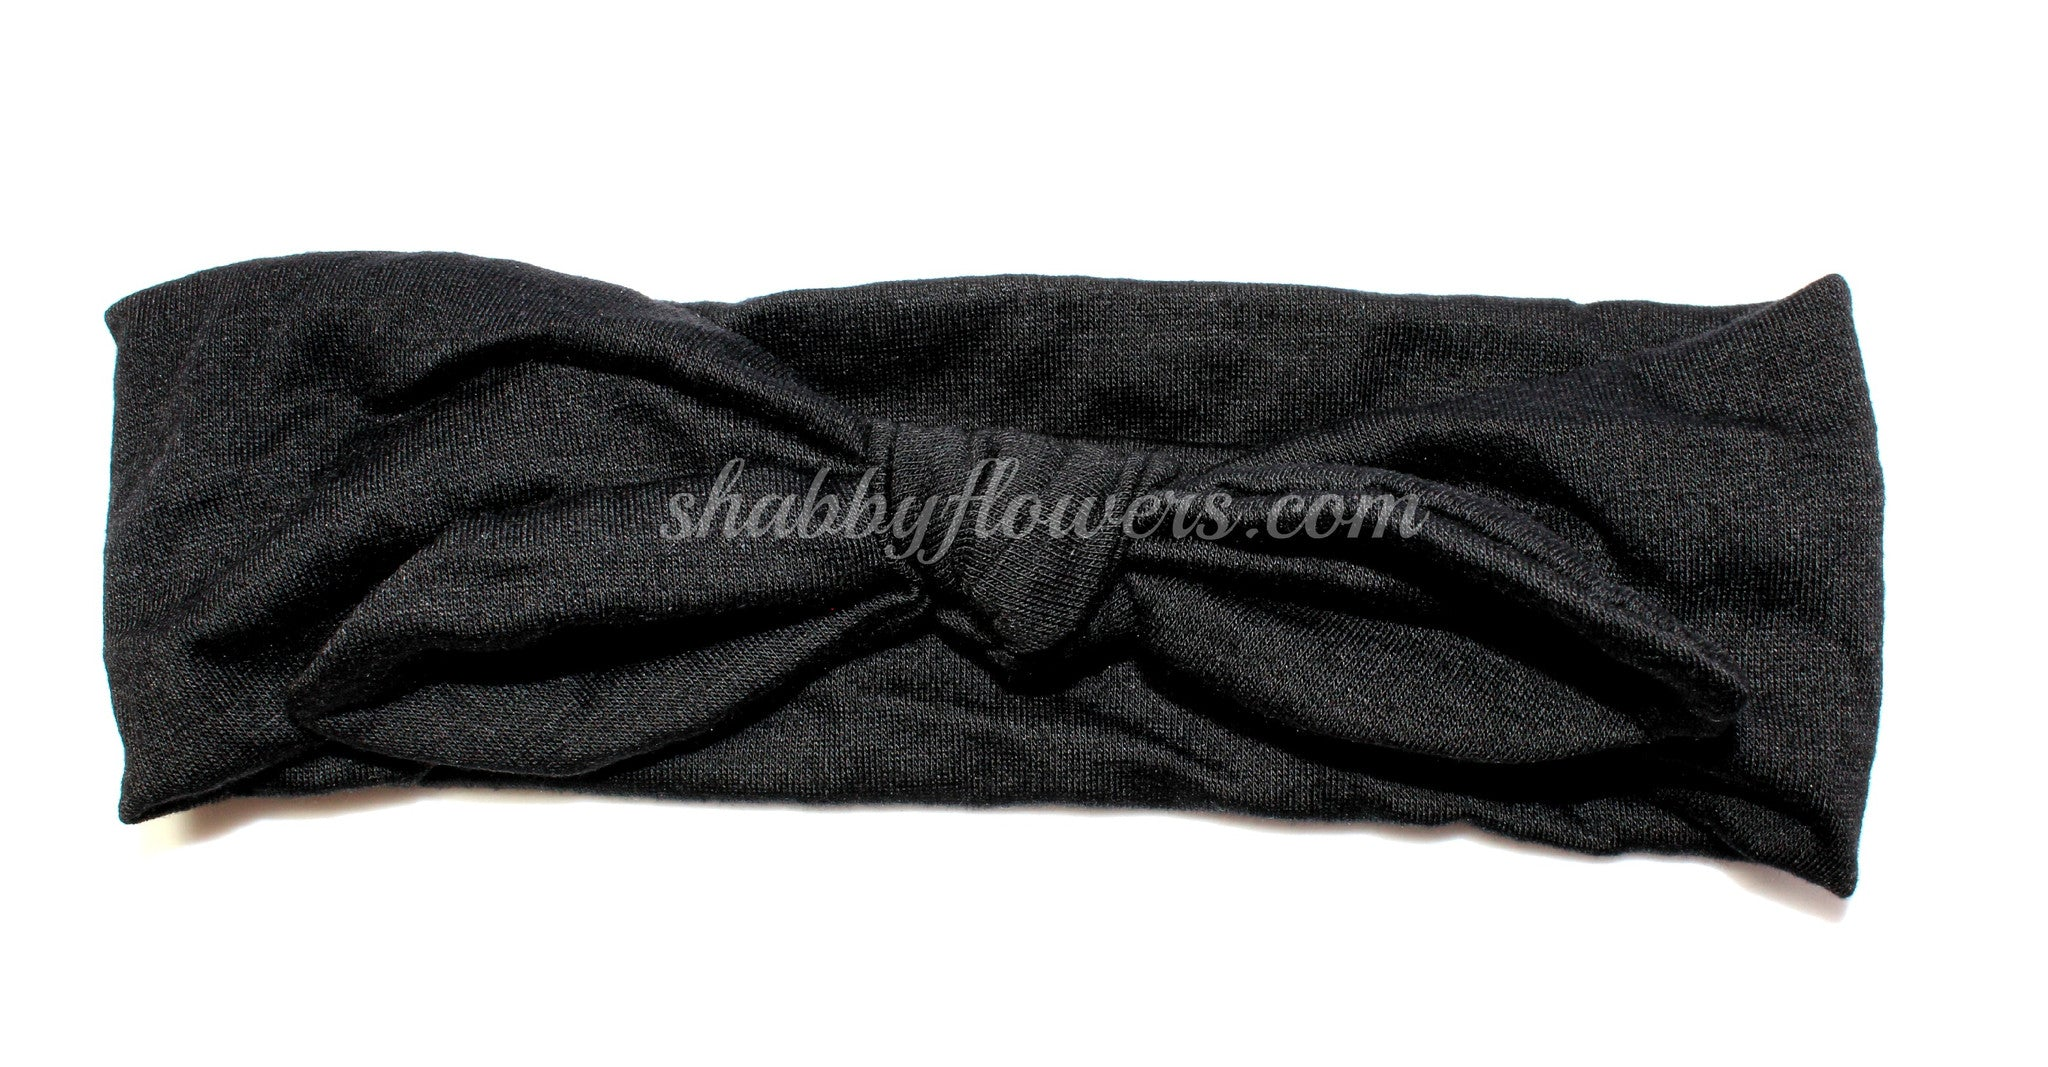 Knot Headband in Black - Regular - shabbyflowers.com